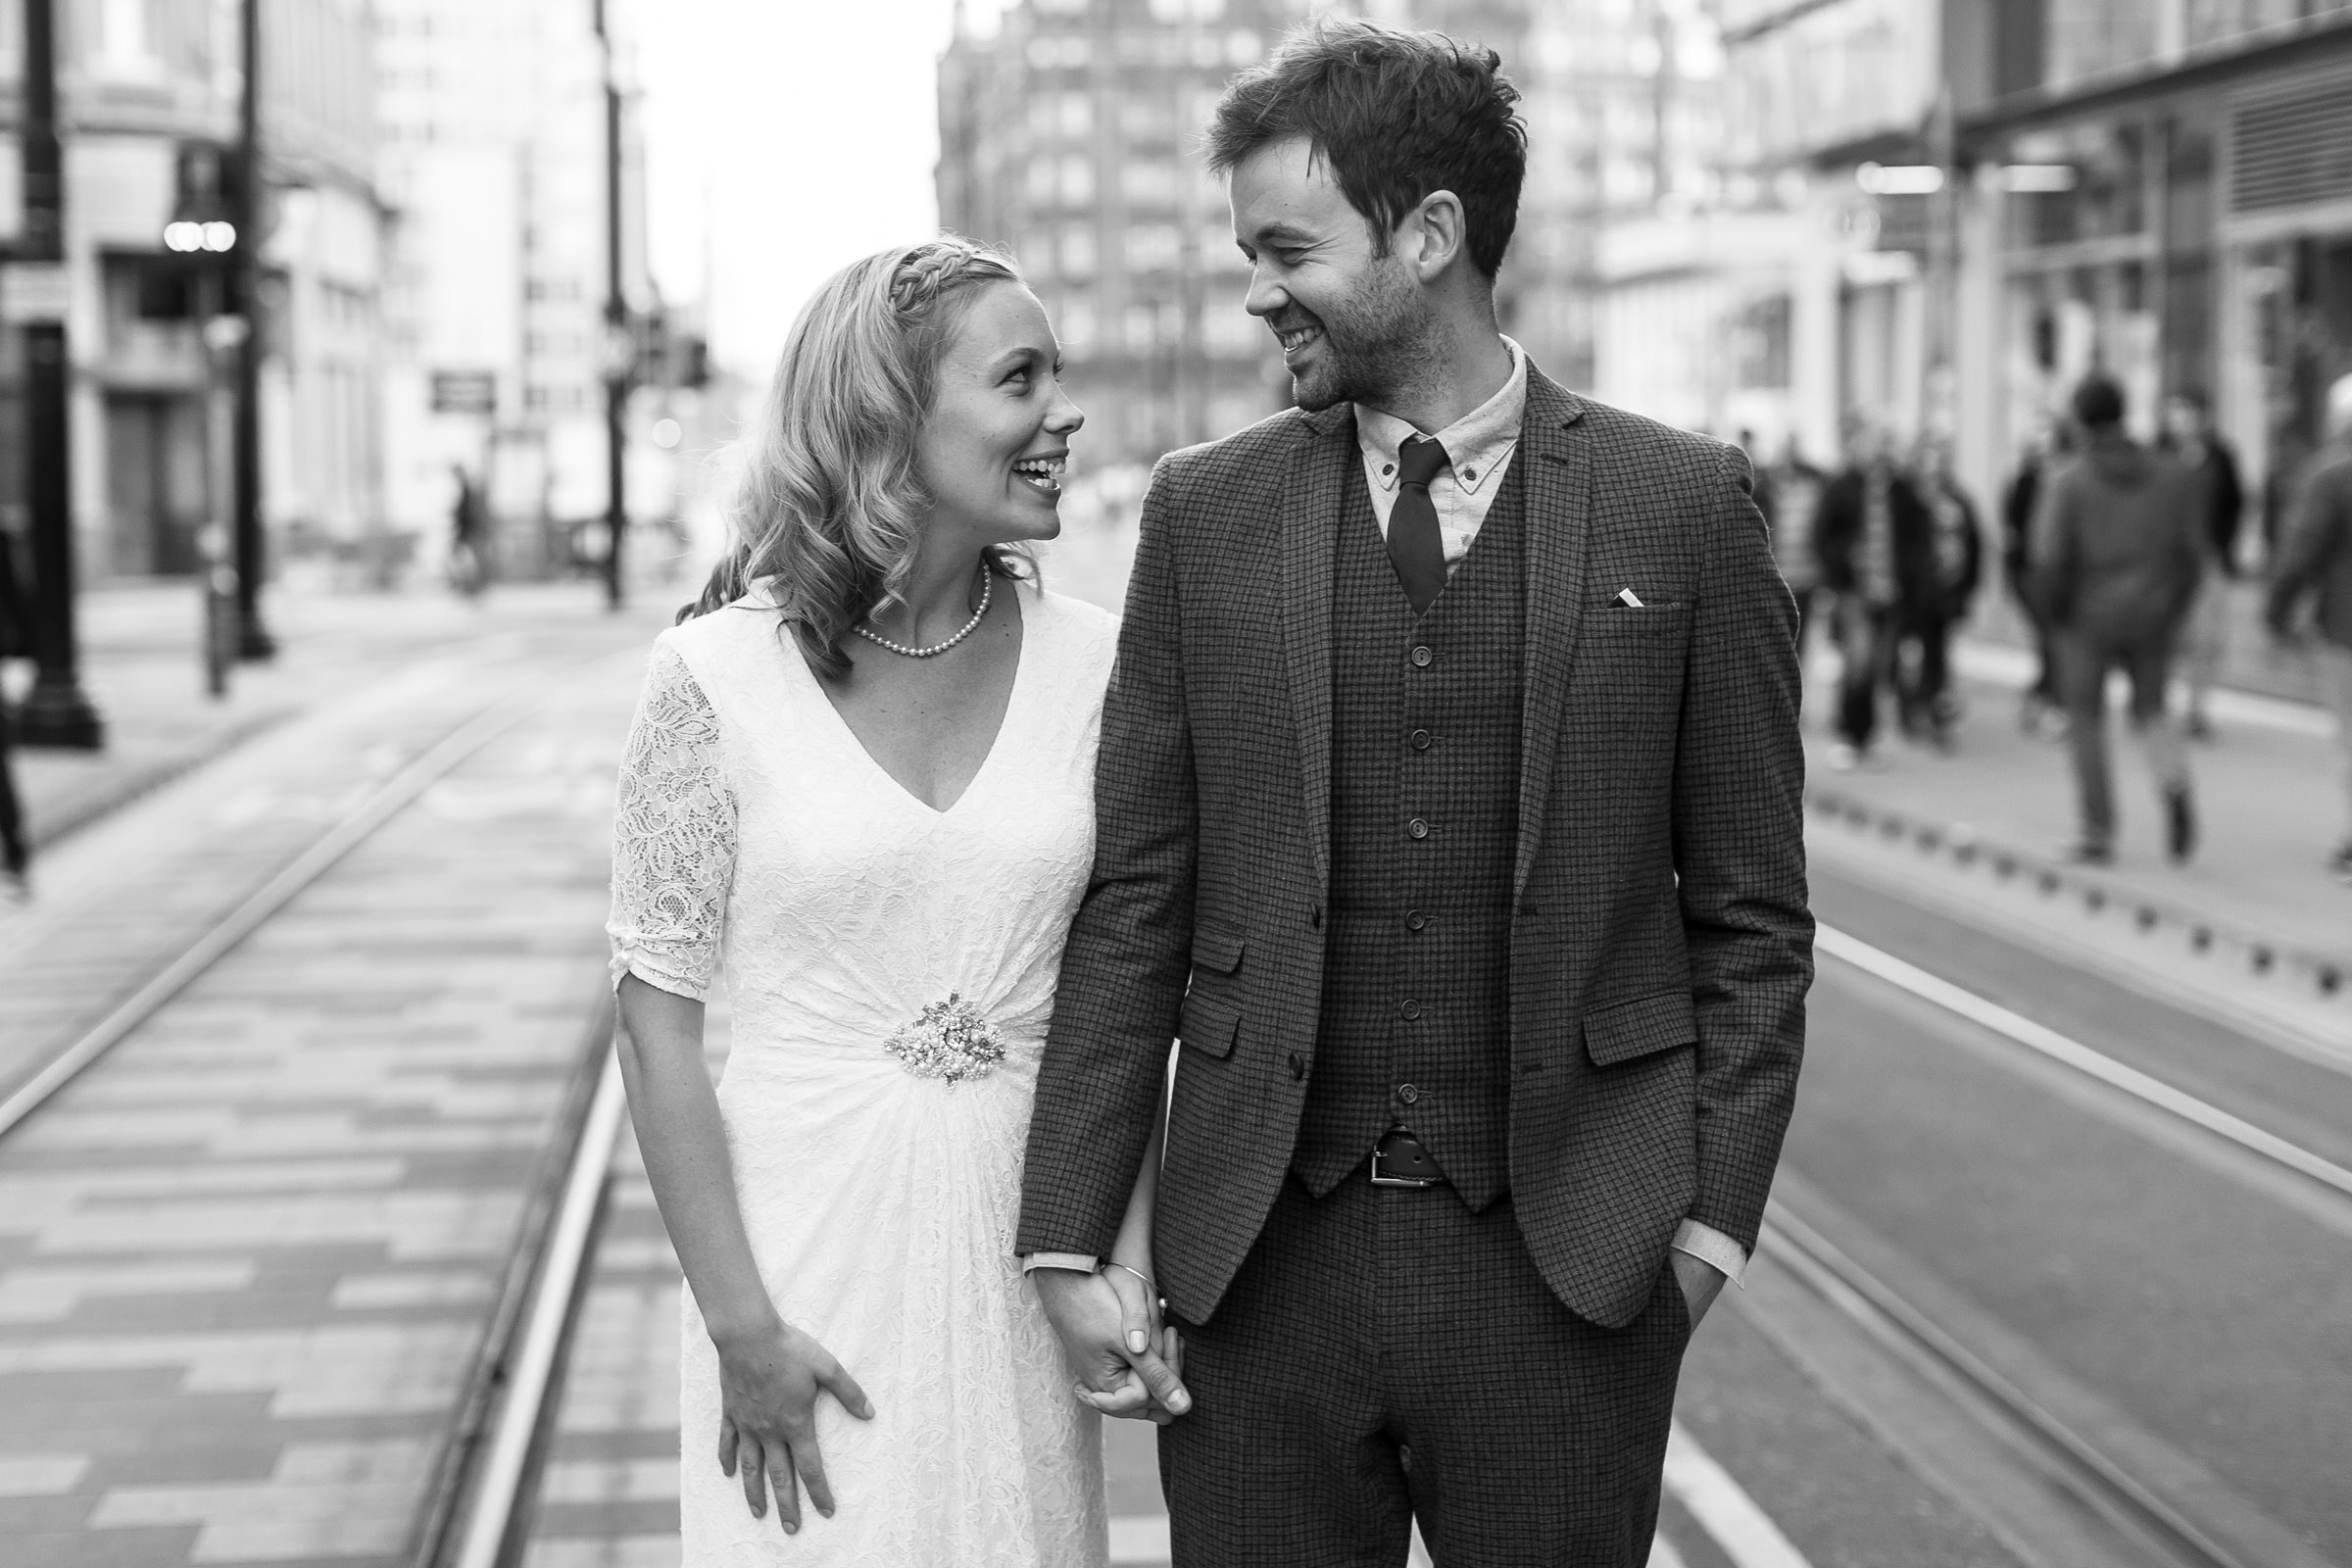 Relaxed wedding photography in Manchester